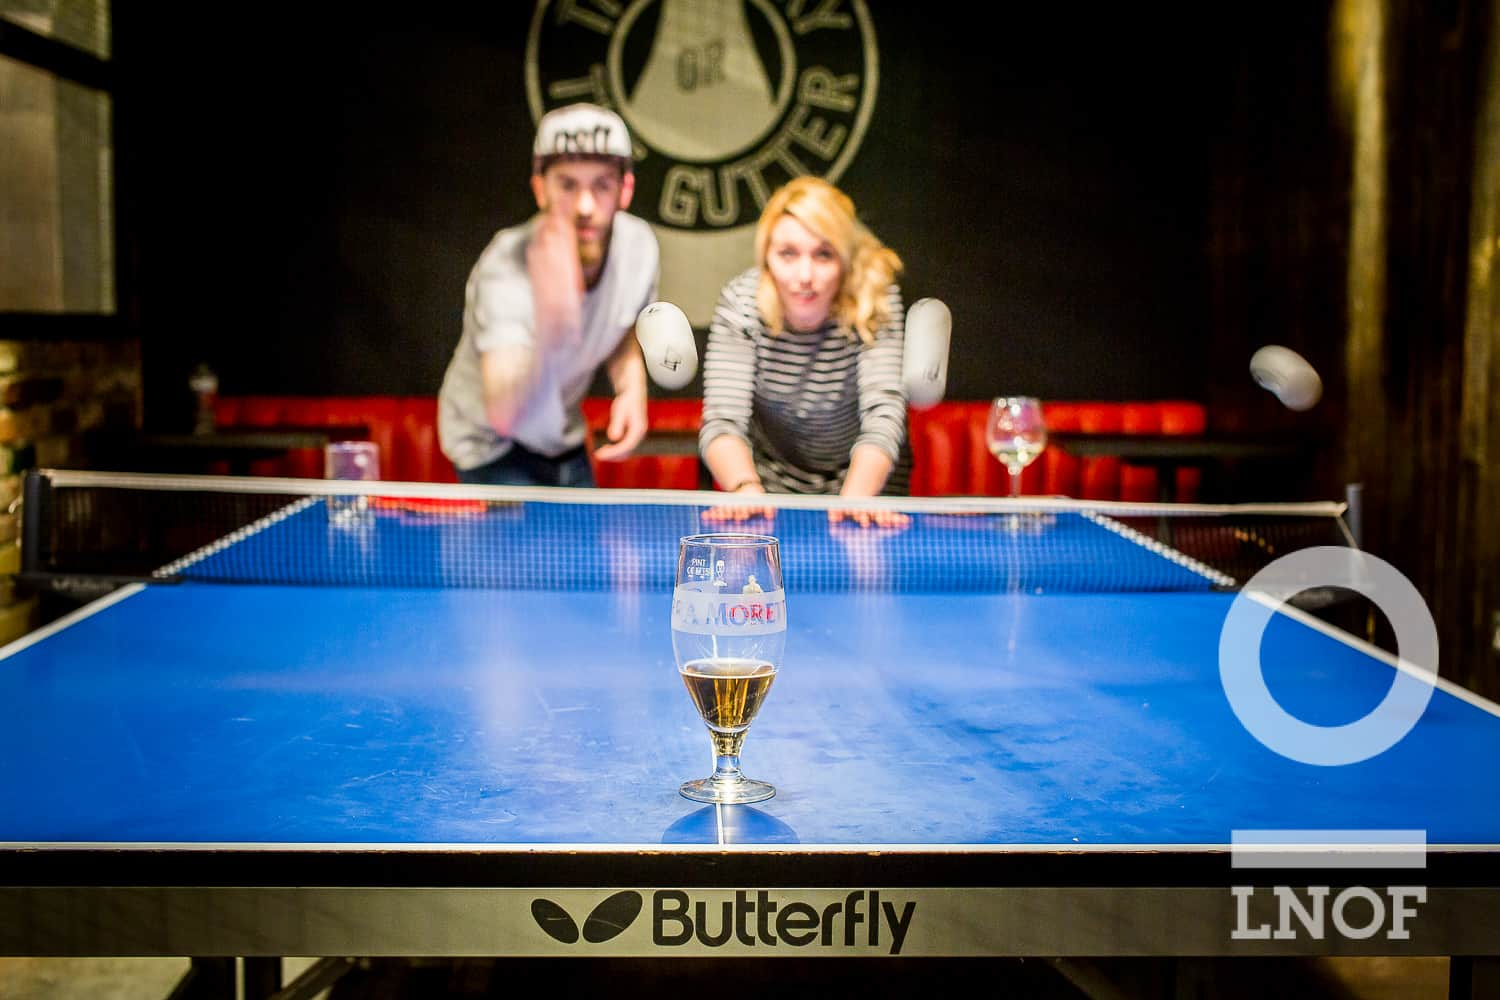 A boy and a girl attempting to bounce ping pong balls into a beer glass